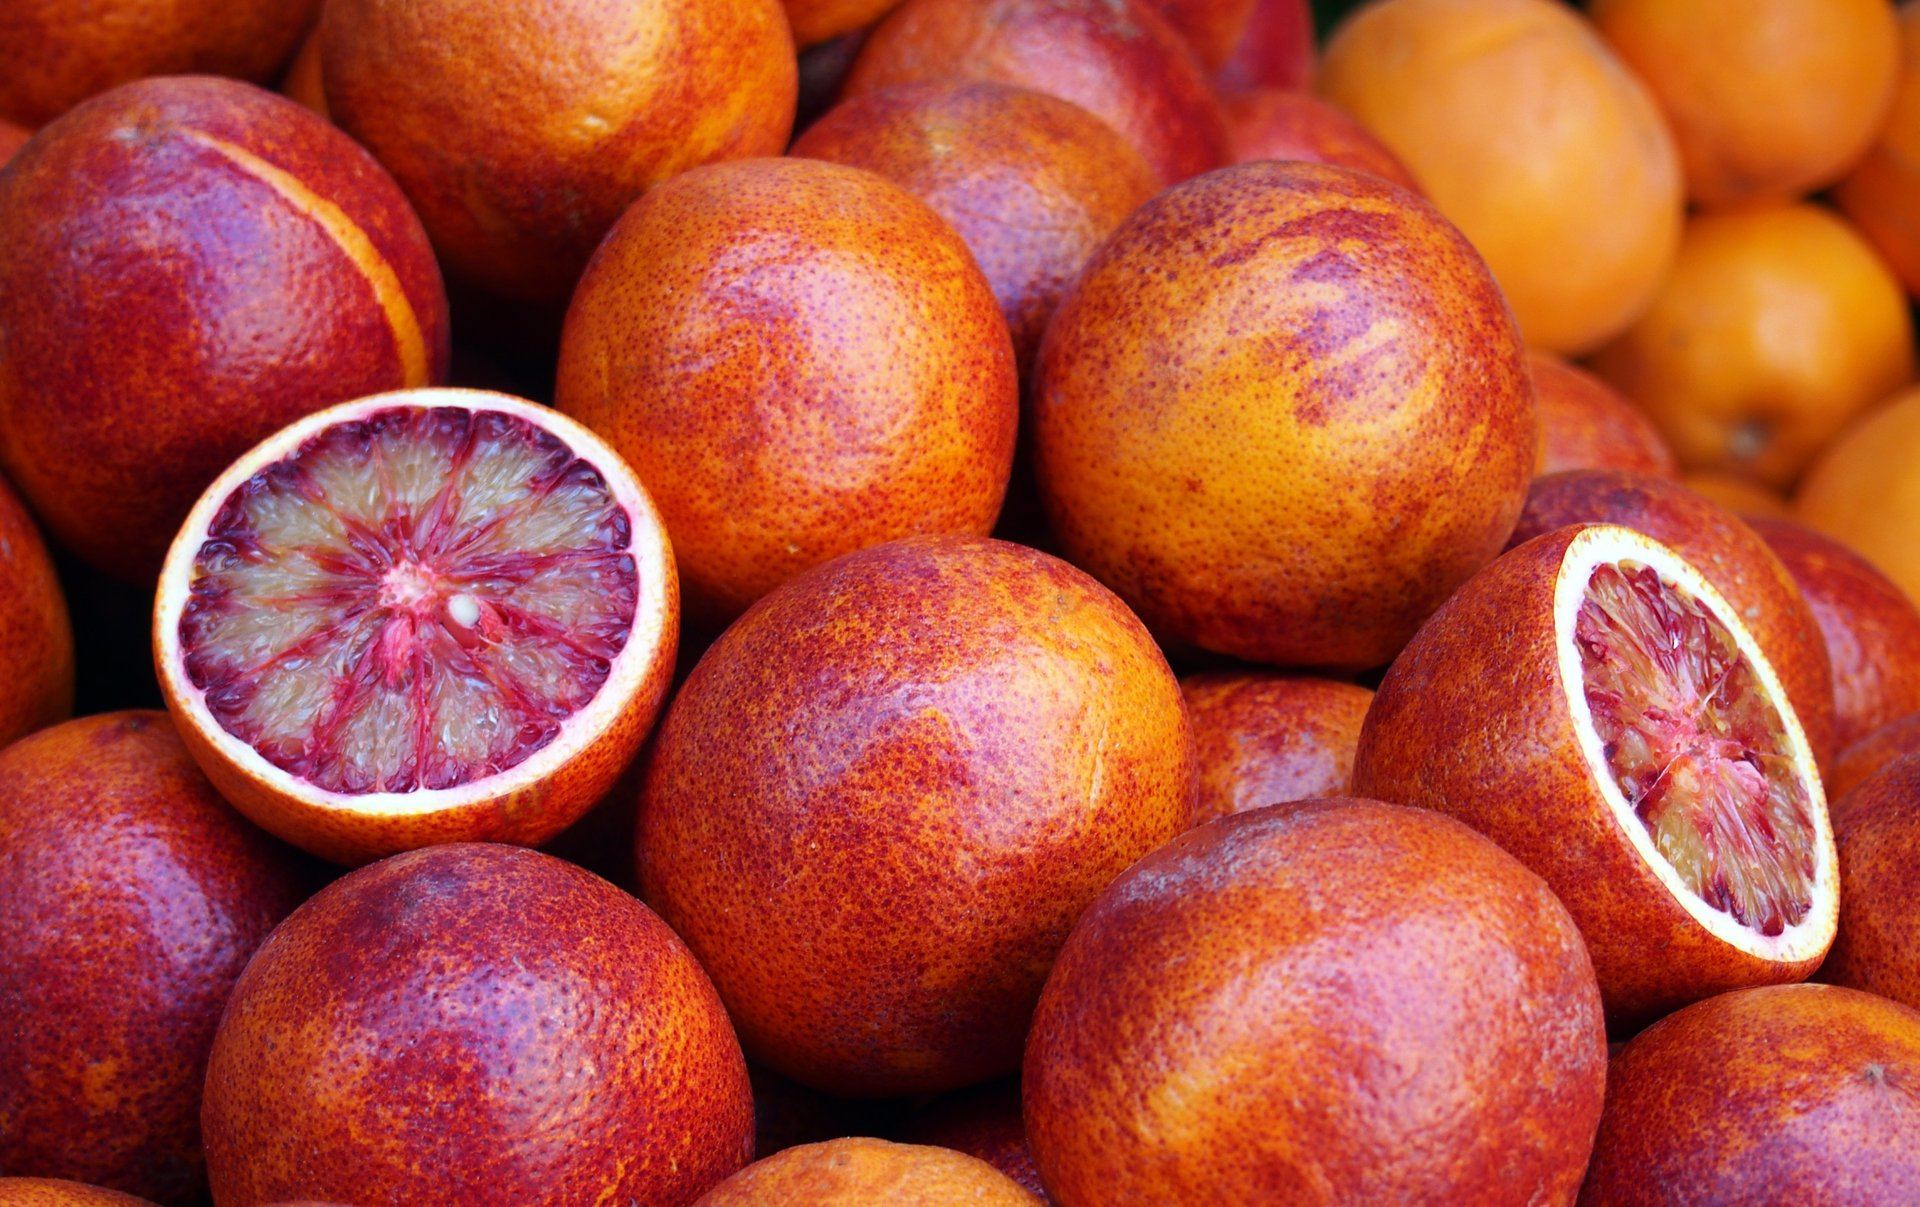 Sicilian Blood Oranges in Sicily 2019 - Best Time